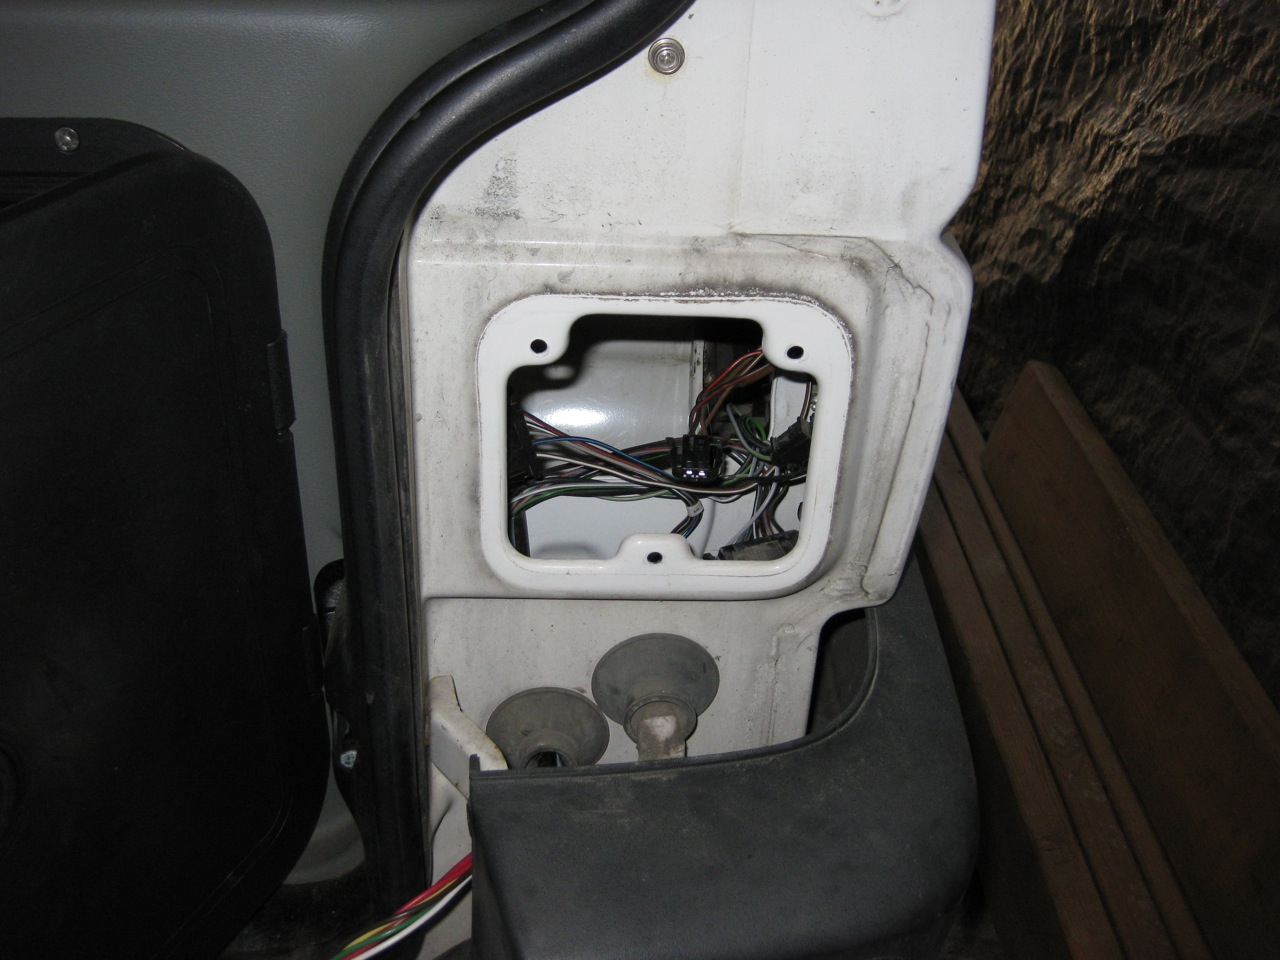 Trailer Wiring Eurovan Stuff Rear Lights Use The Cold Shrink Tape To Bundle Up All Your Wires Neat And Tidy Run From Adapter Taillight Following Route Of Existing